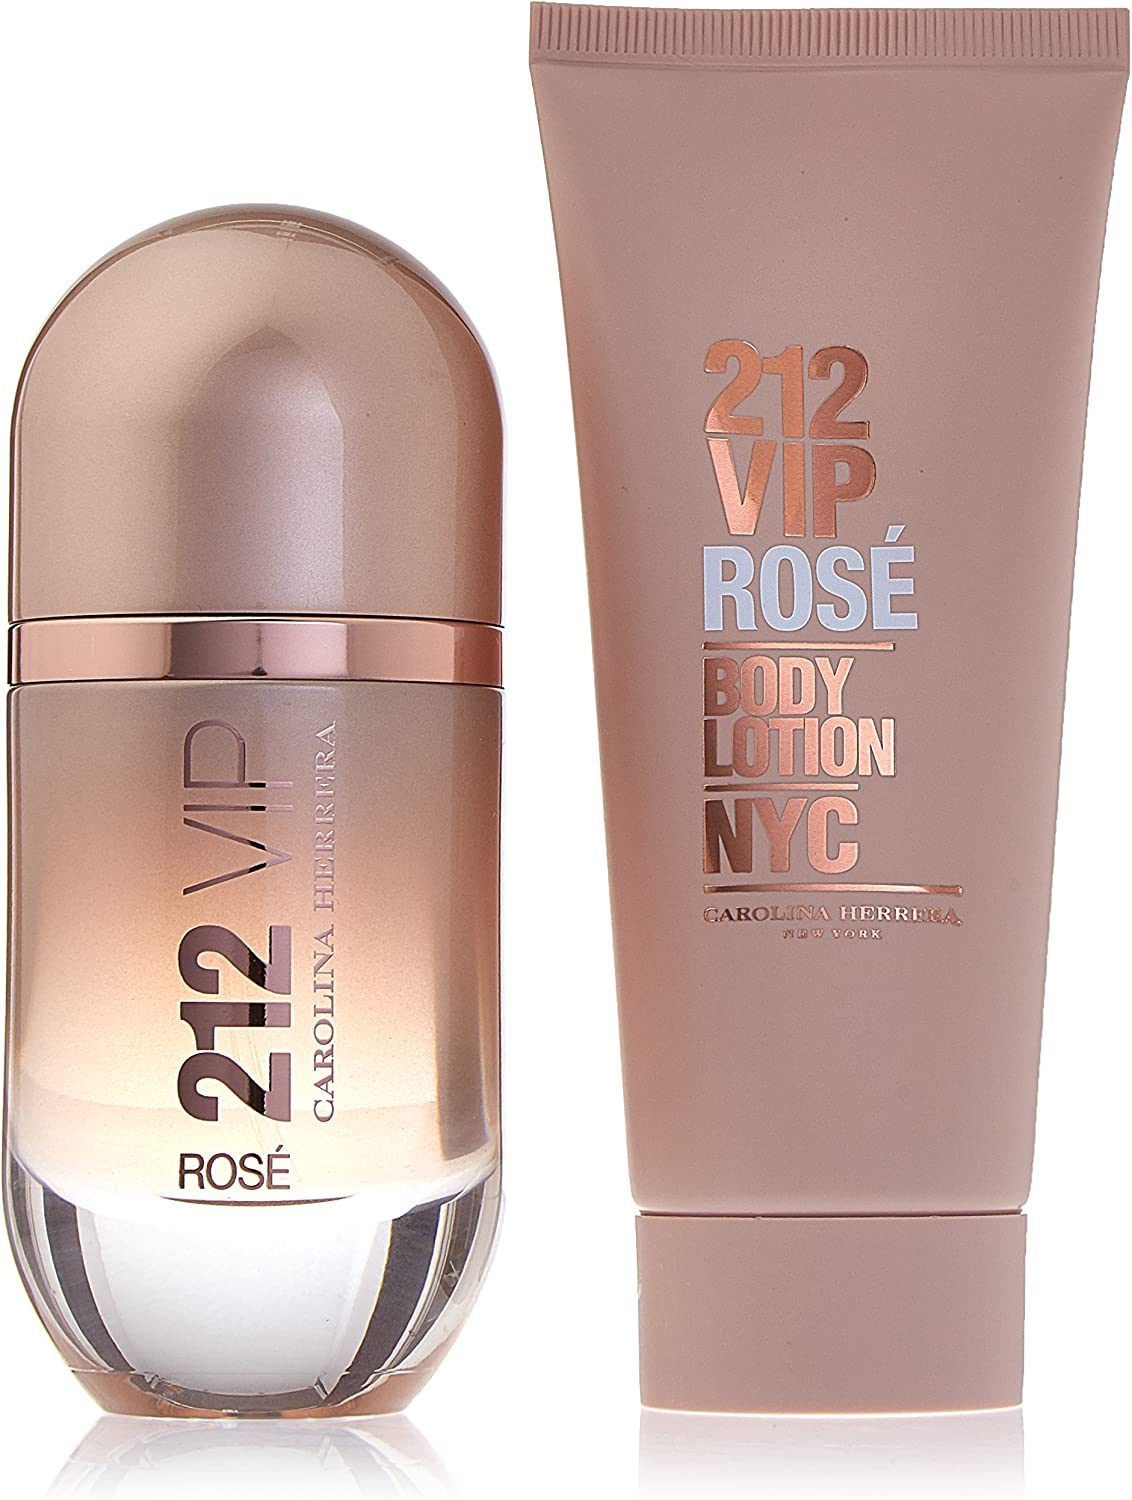 ESTUCHE Carolina Herrera 212 VIP Rose 50ml EDP: Amazon.es: Belleza